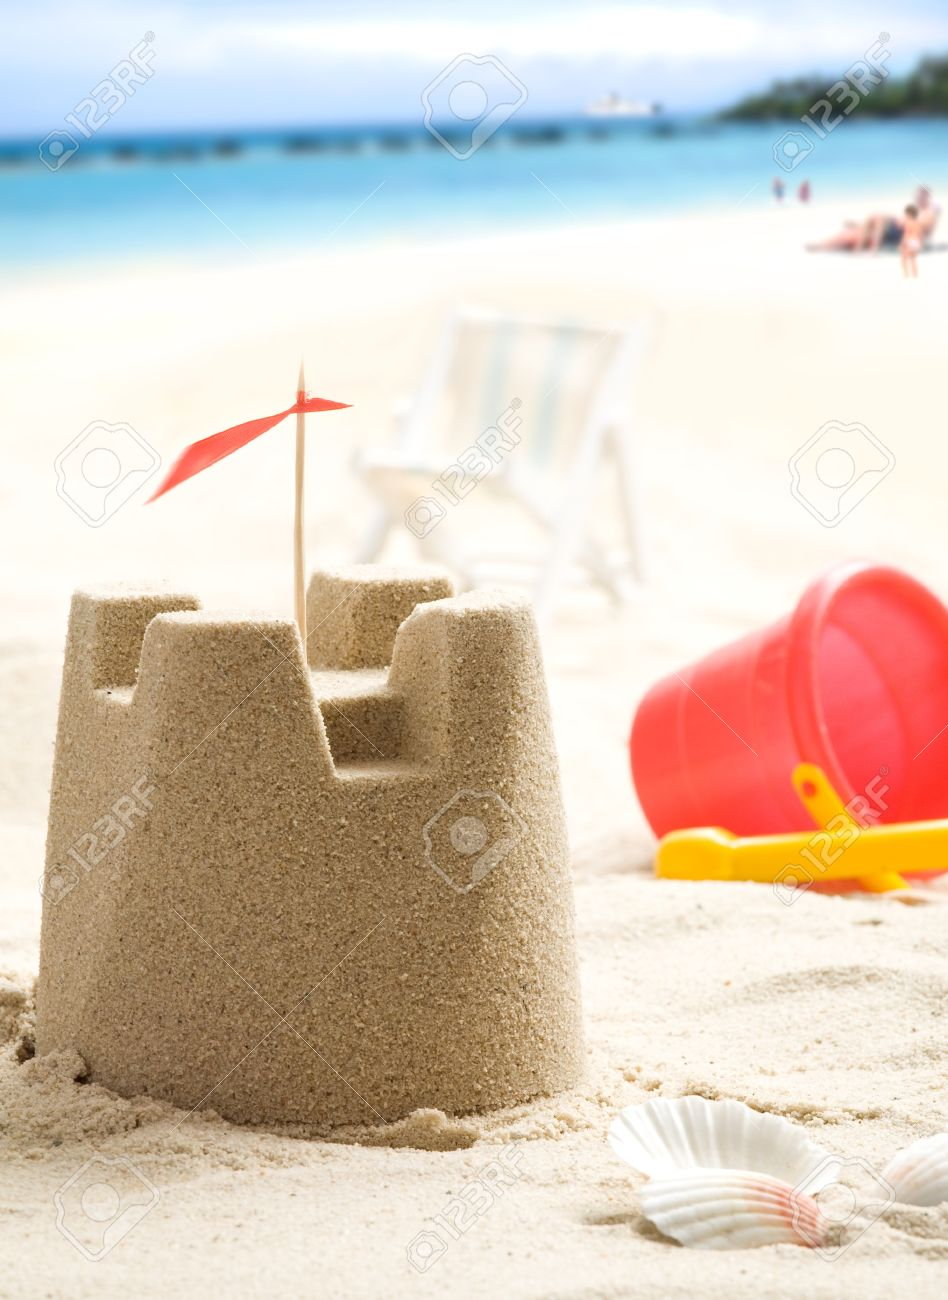 Sand castle on the beach  People and sea in background Stock Photo - 13307846